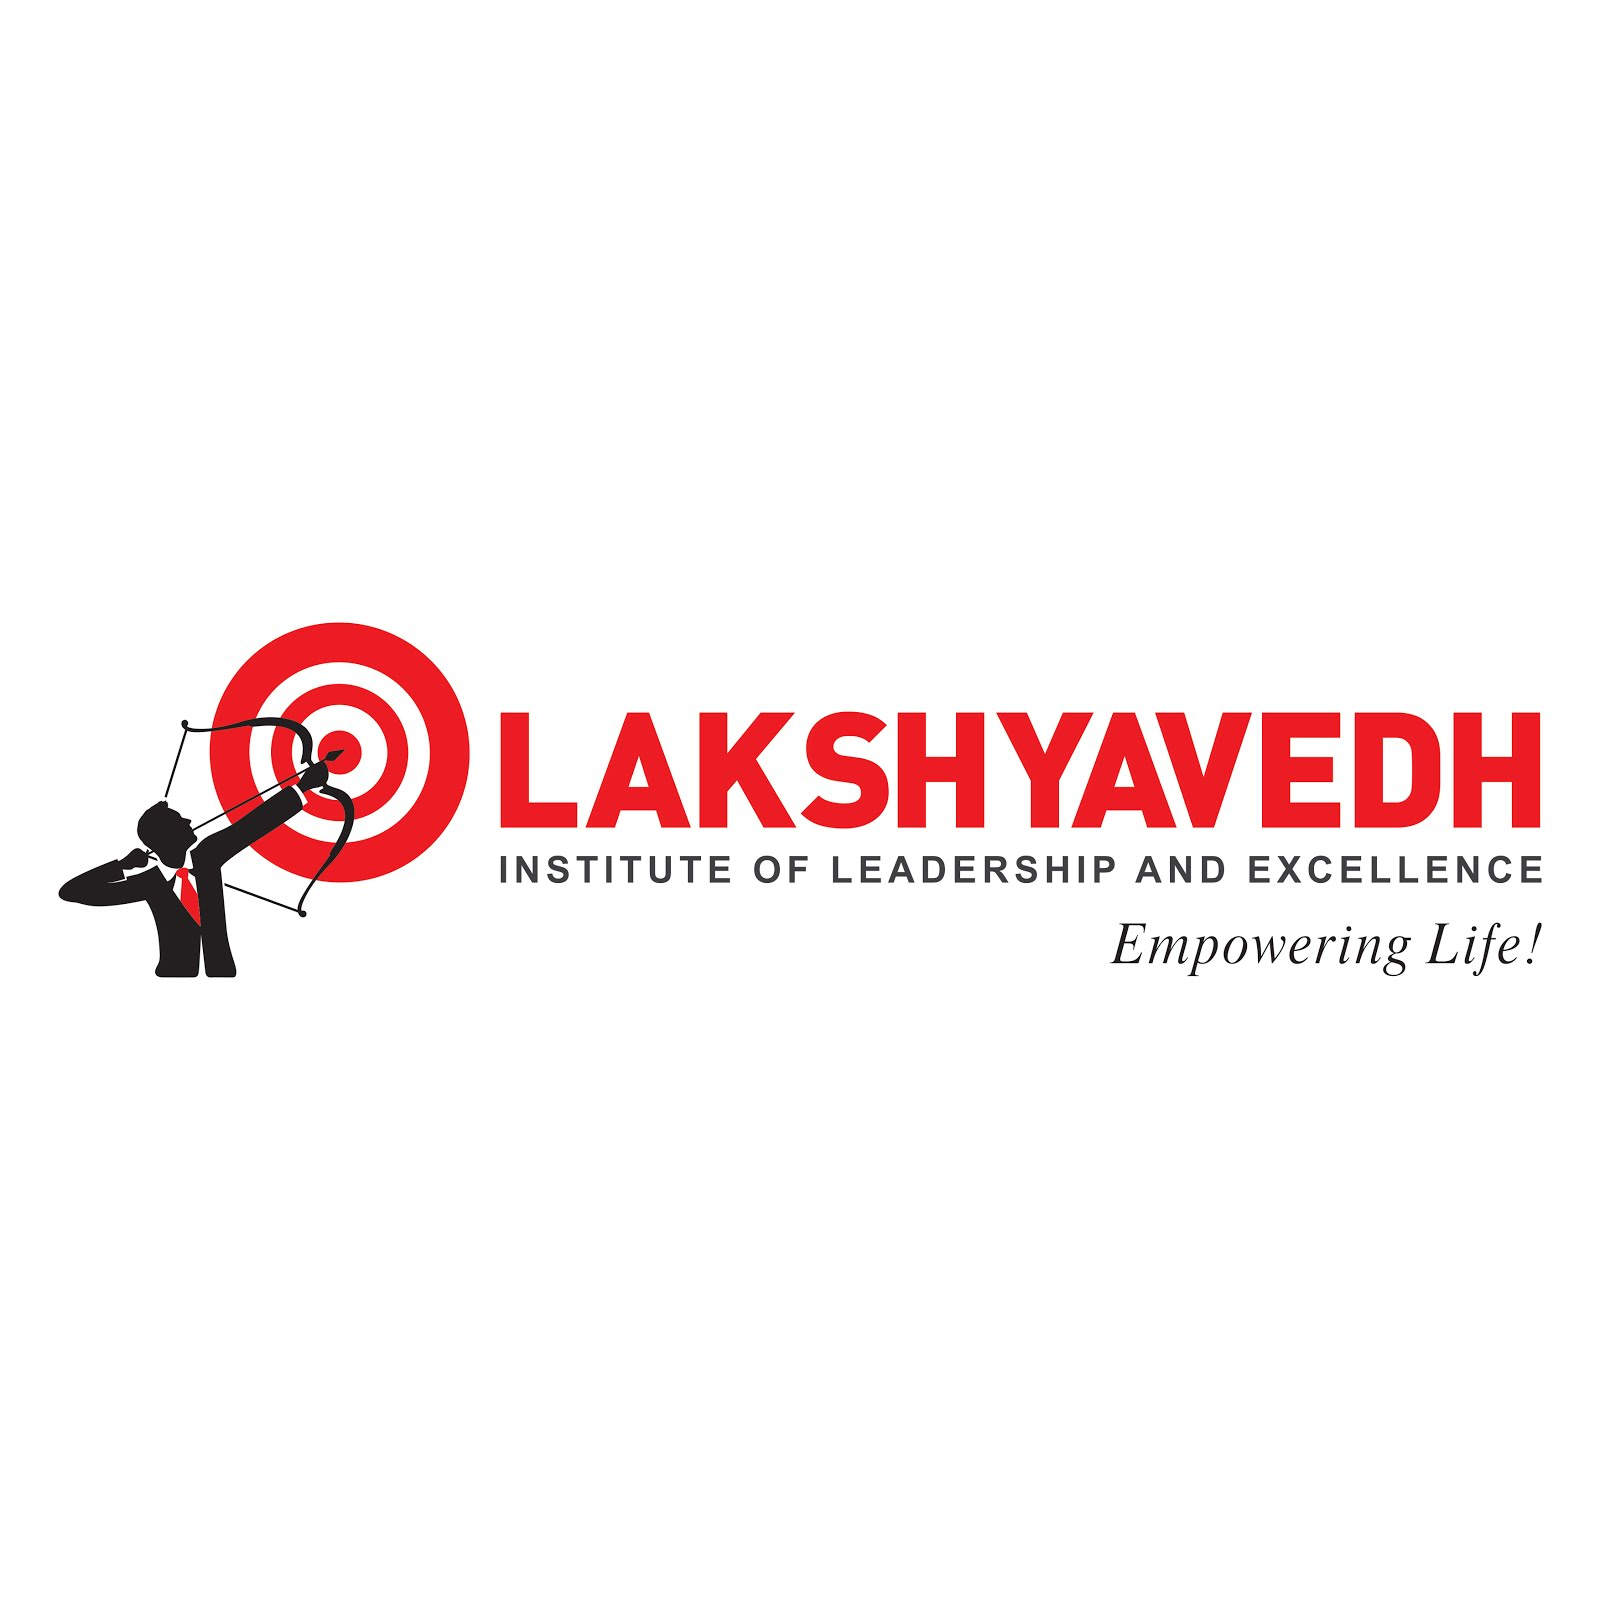 LAKSHYAVEDH INSTITUTE OF LEADERSHIP AND EXCELLENCE